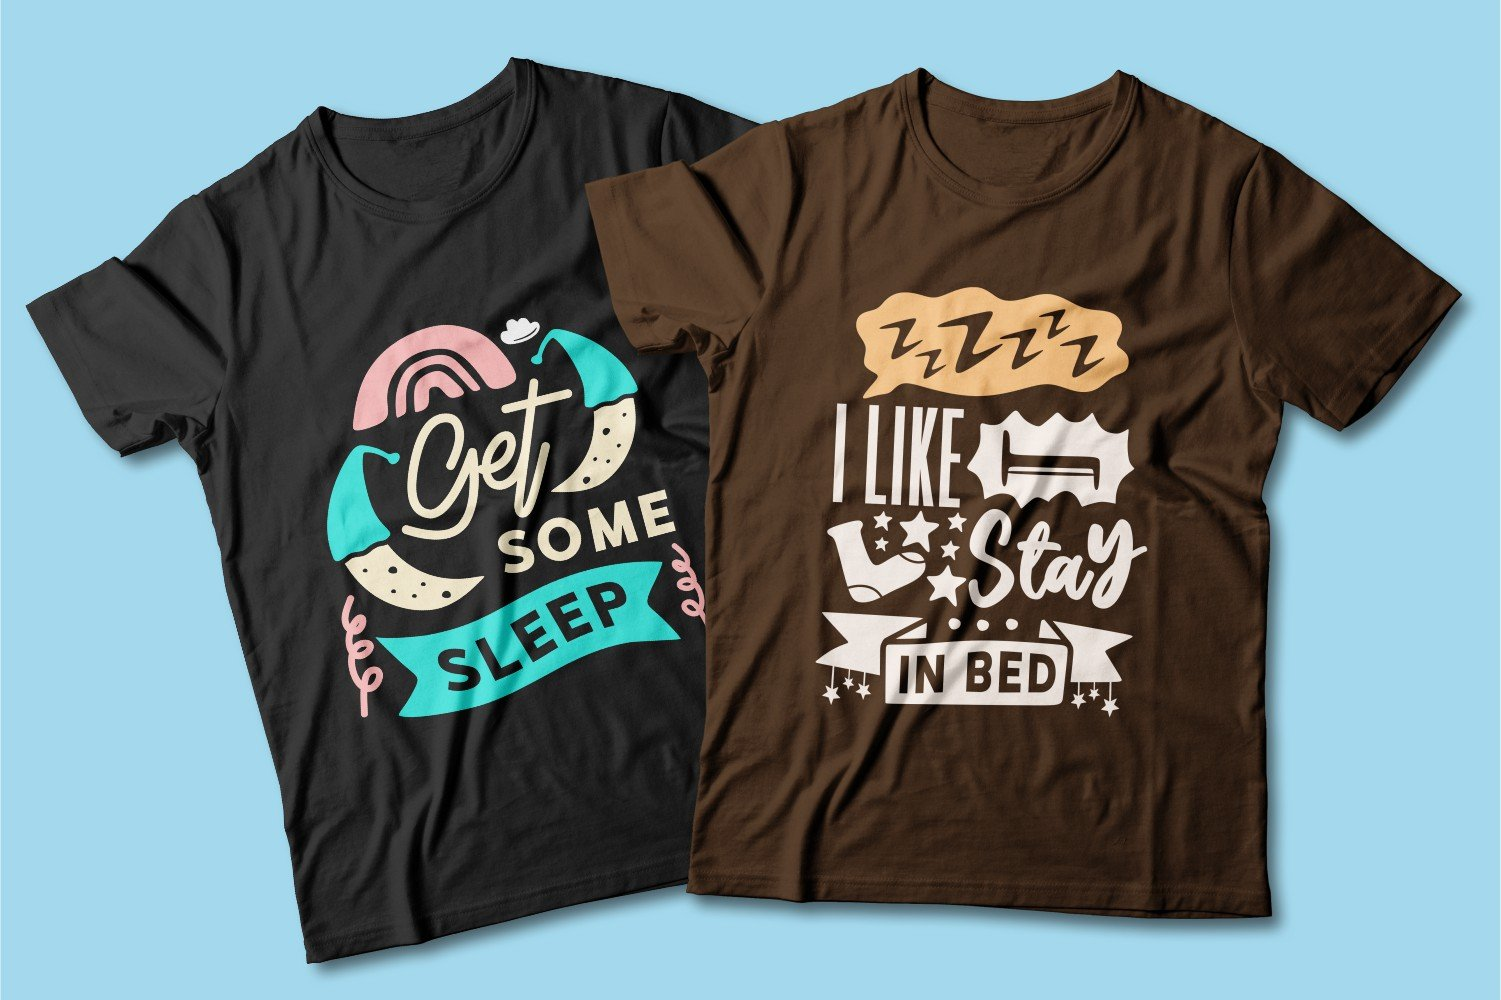 Black and brown T-shirts with sleep elements.